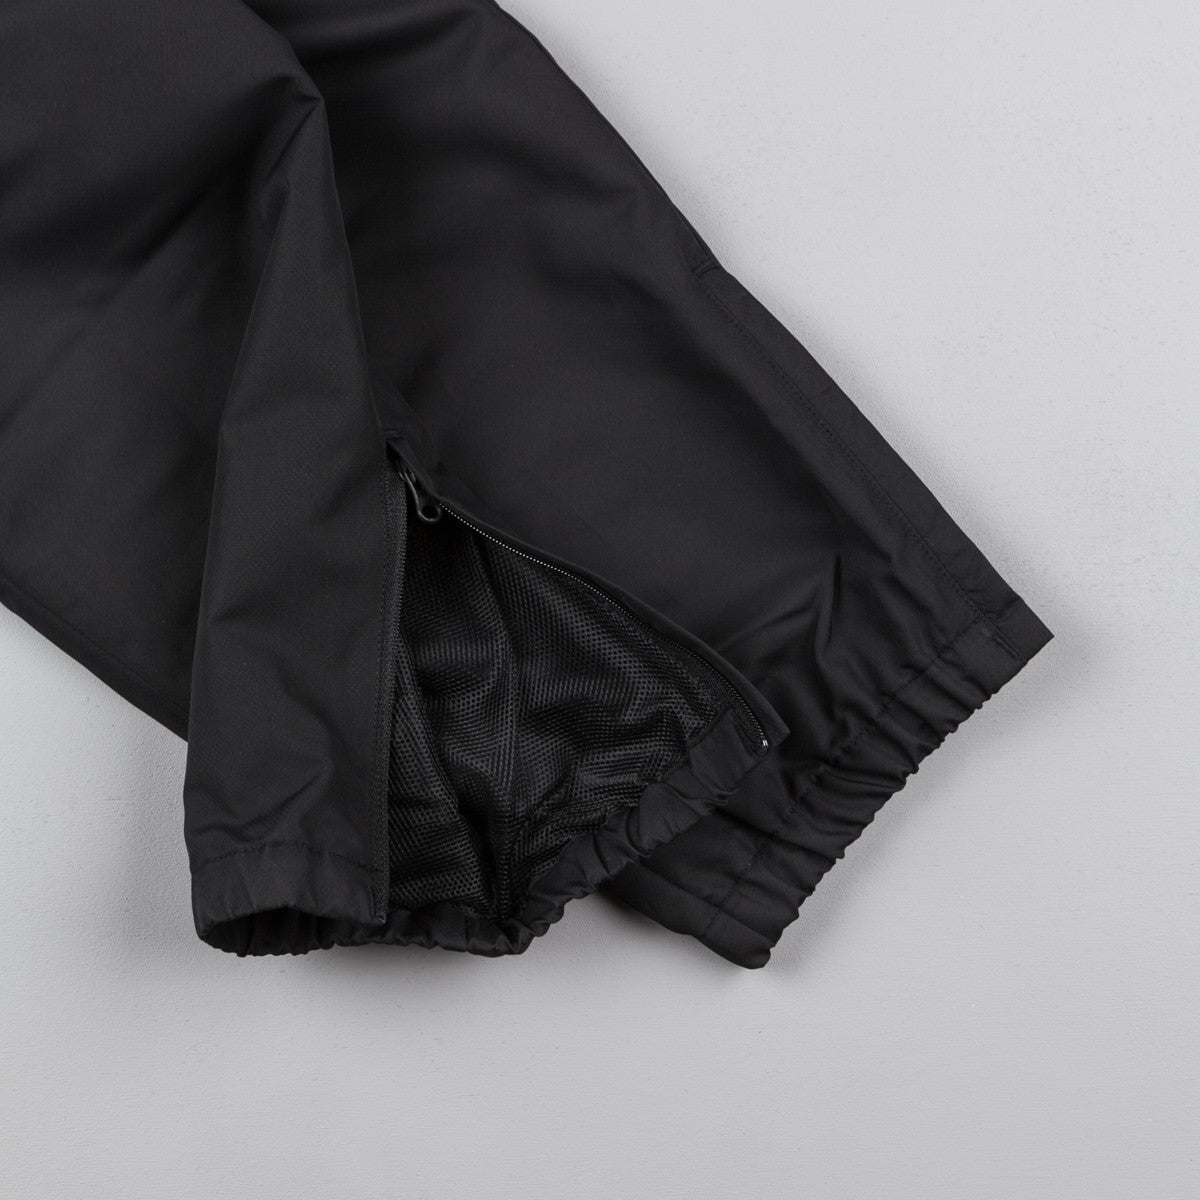 Adidas DGK Sweatpants - Black